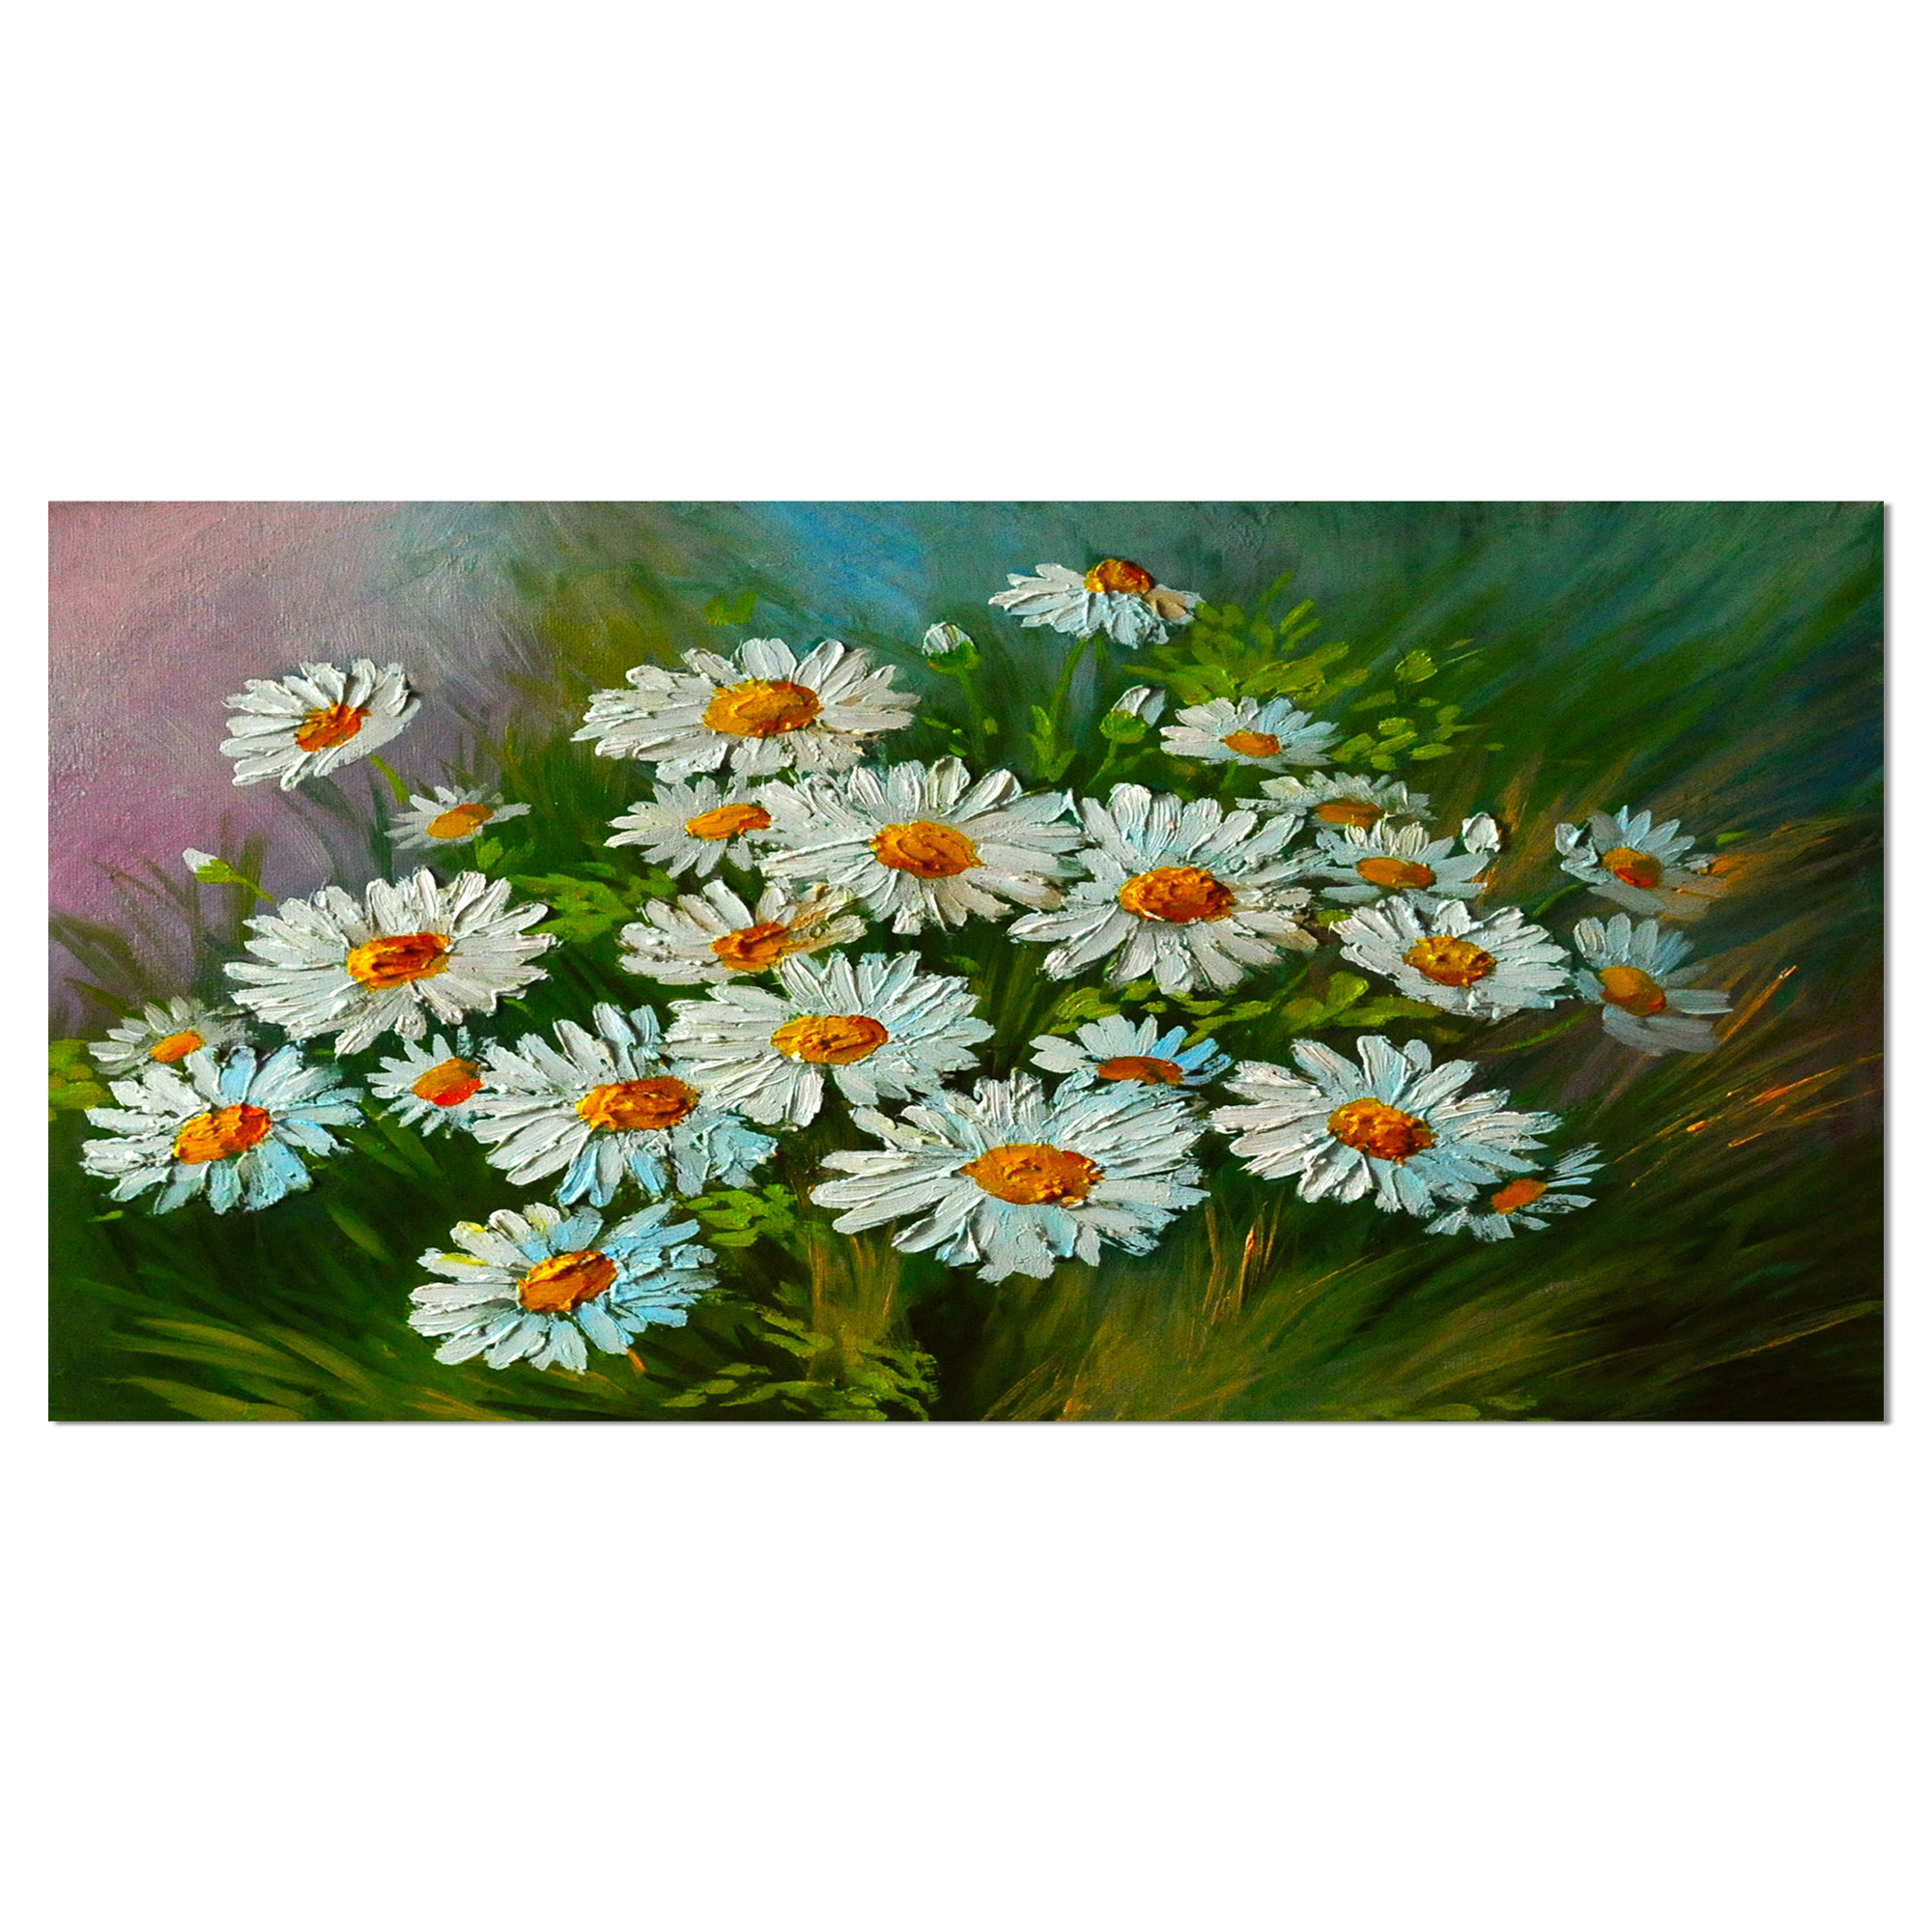 Heavily Textured Daisies - image 1 of 3